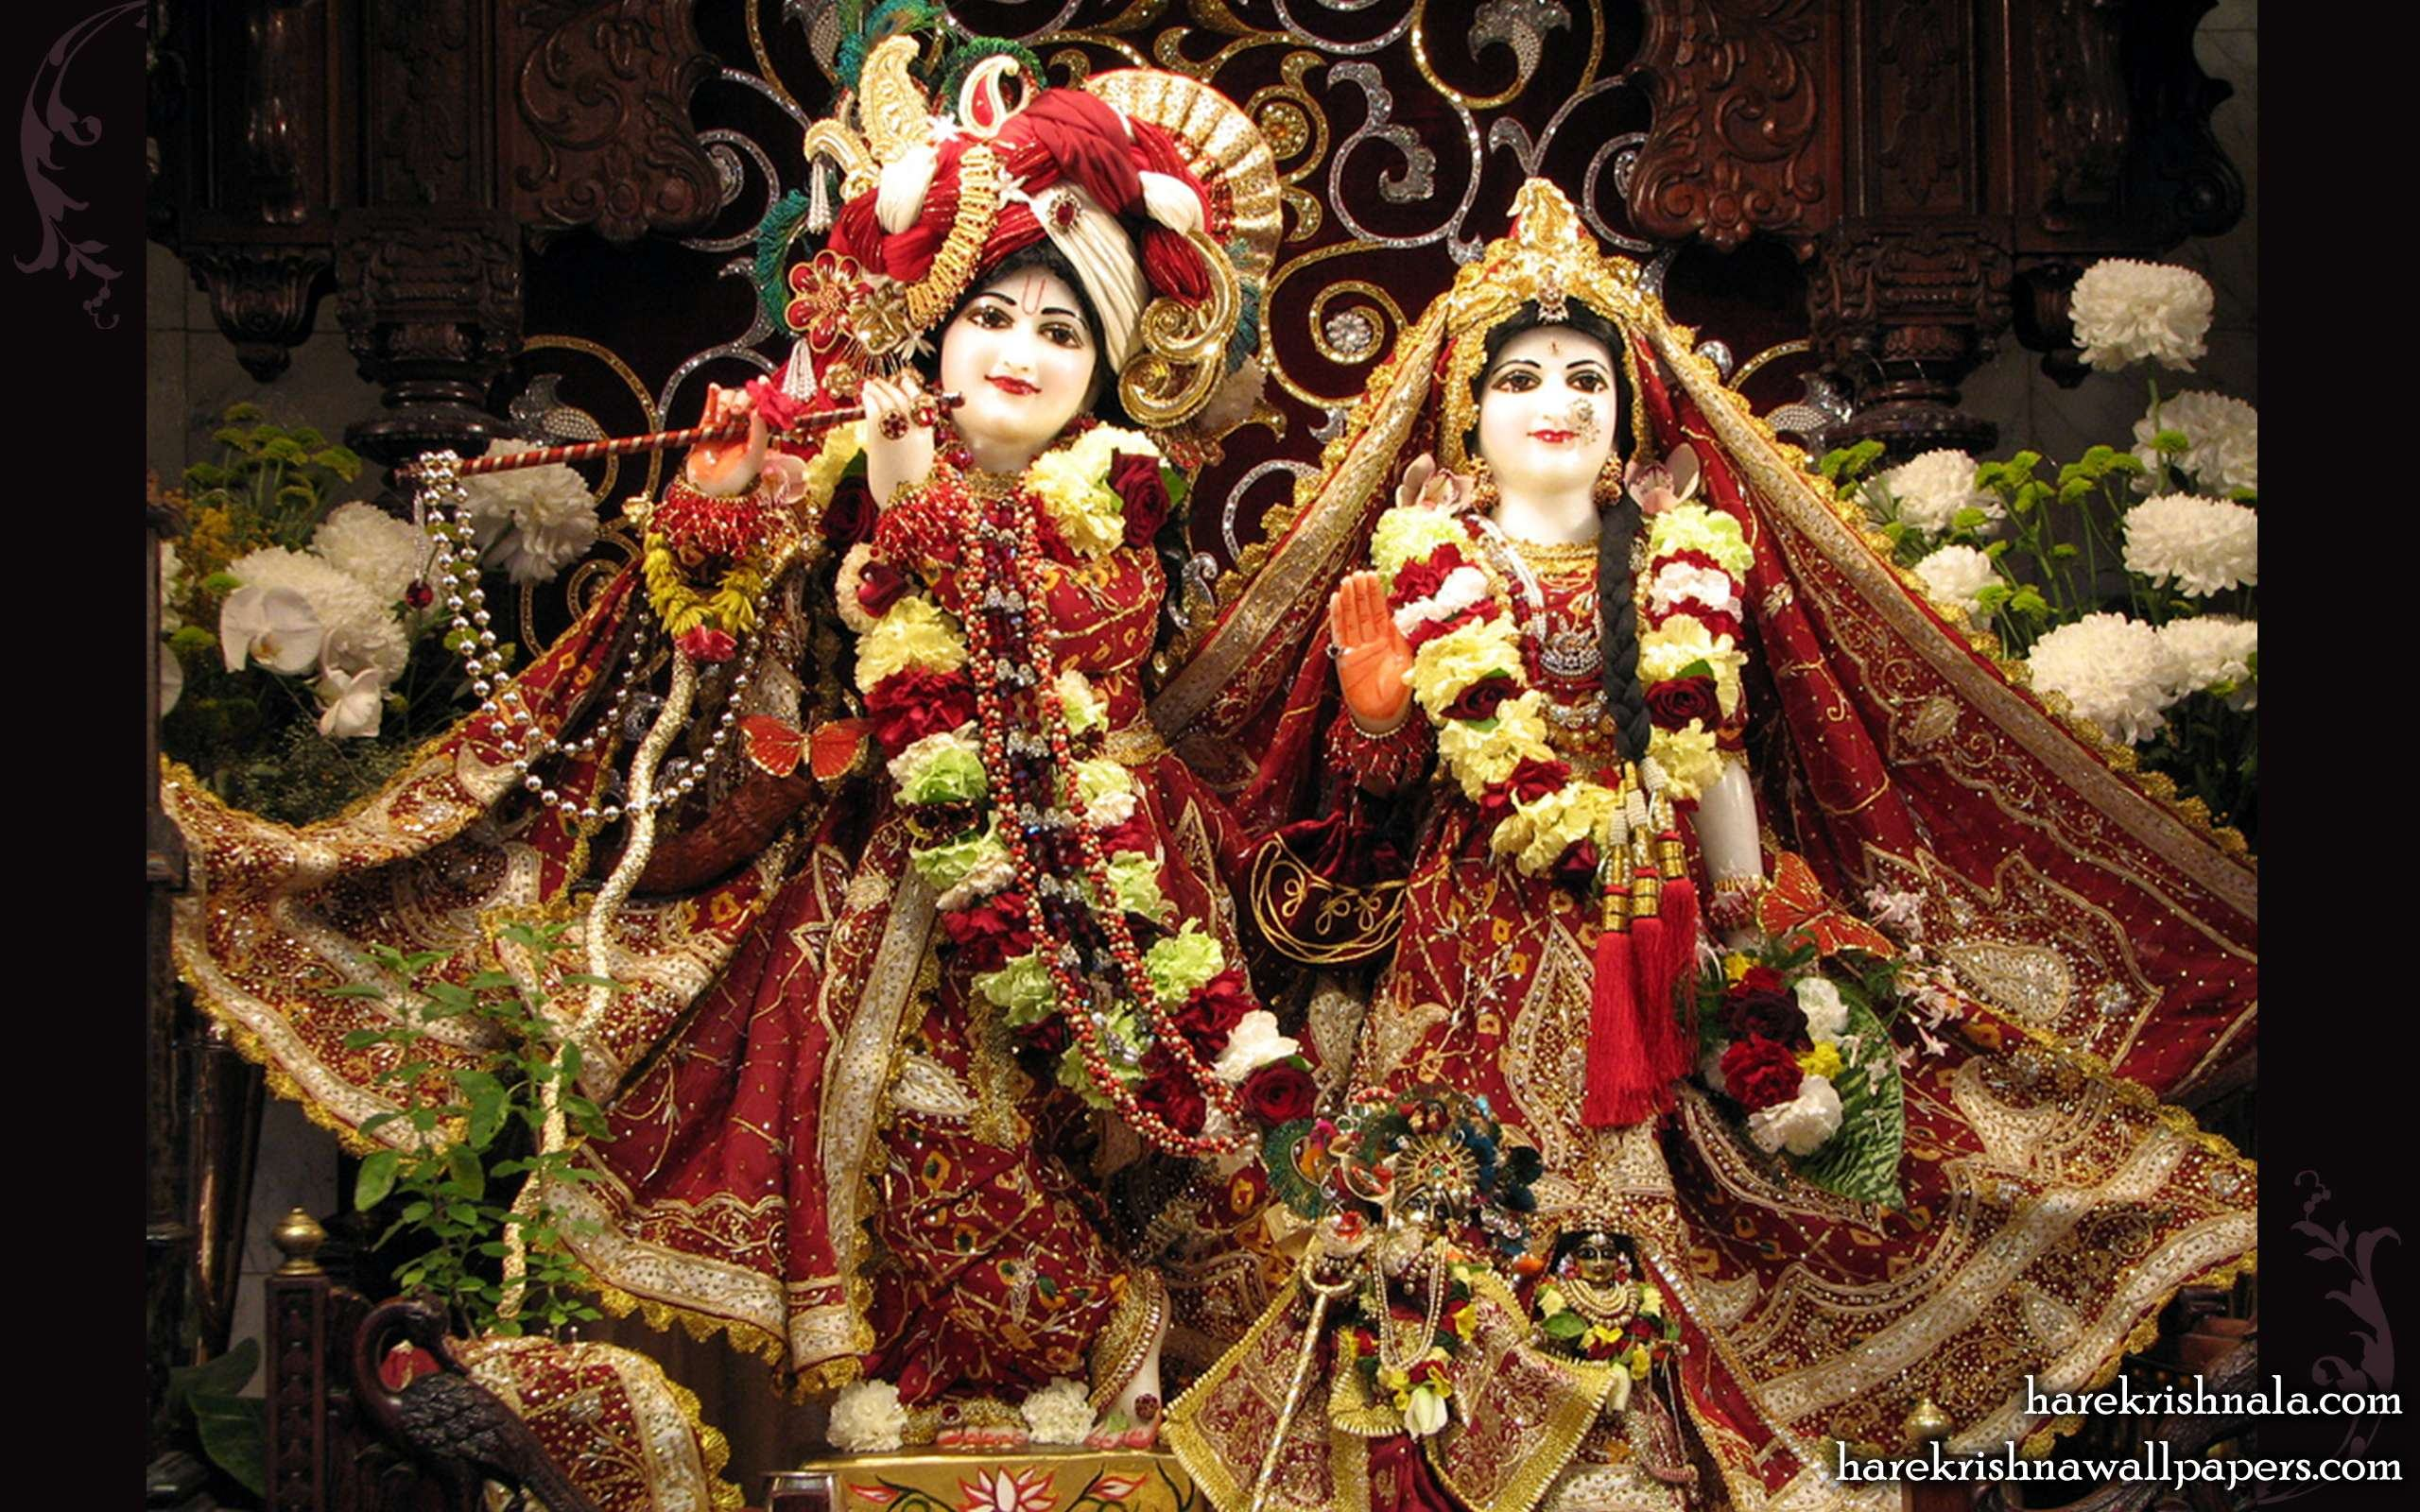 Wallpaper Hd Download Hare Krishna Iskcon Radha Krishna 3048377 Hd Wallpaper Backgrounds Download